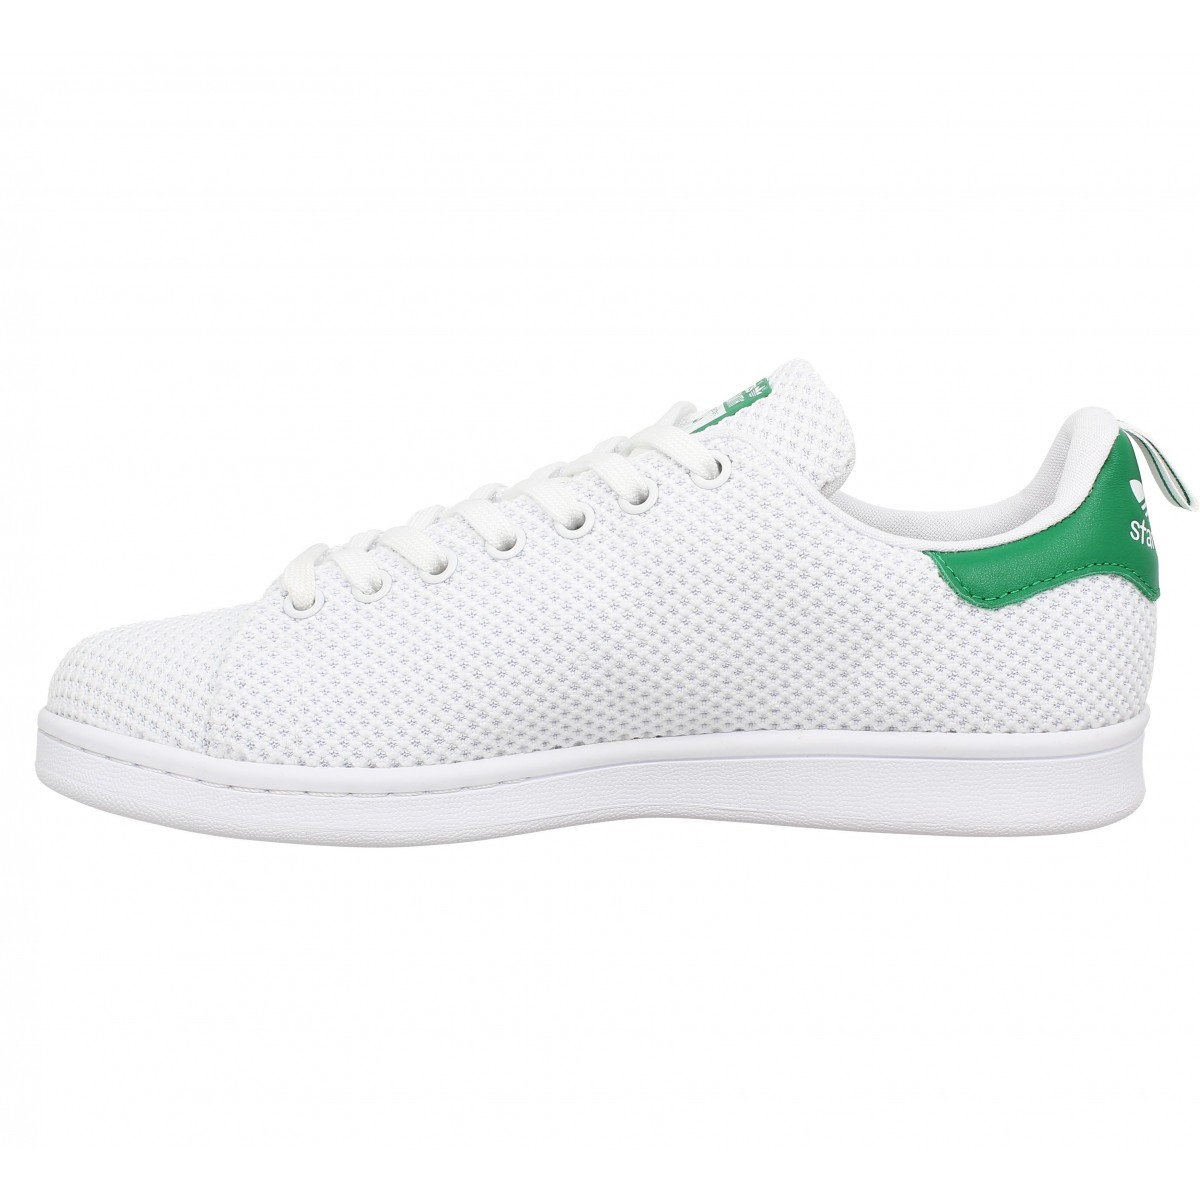 Baskets ADIDAS Stan Smith toile Blanc Vert. 1